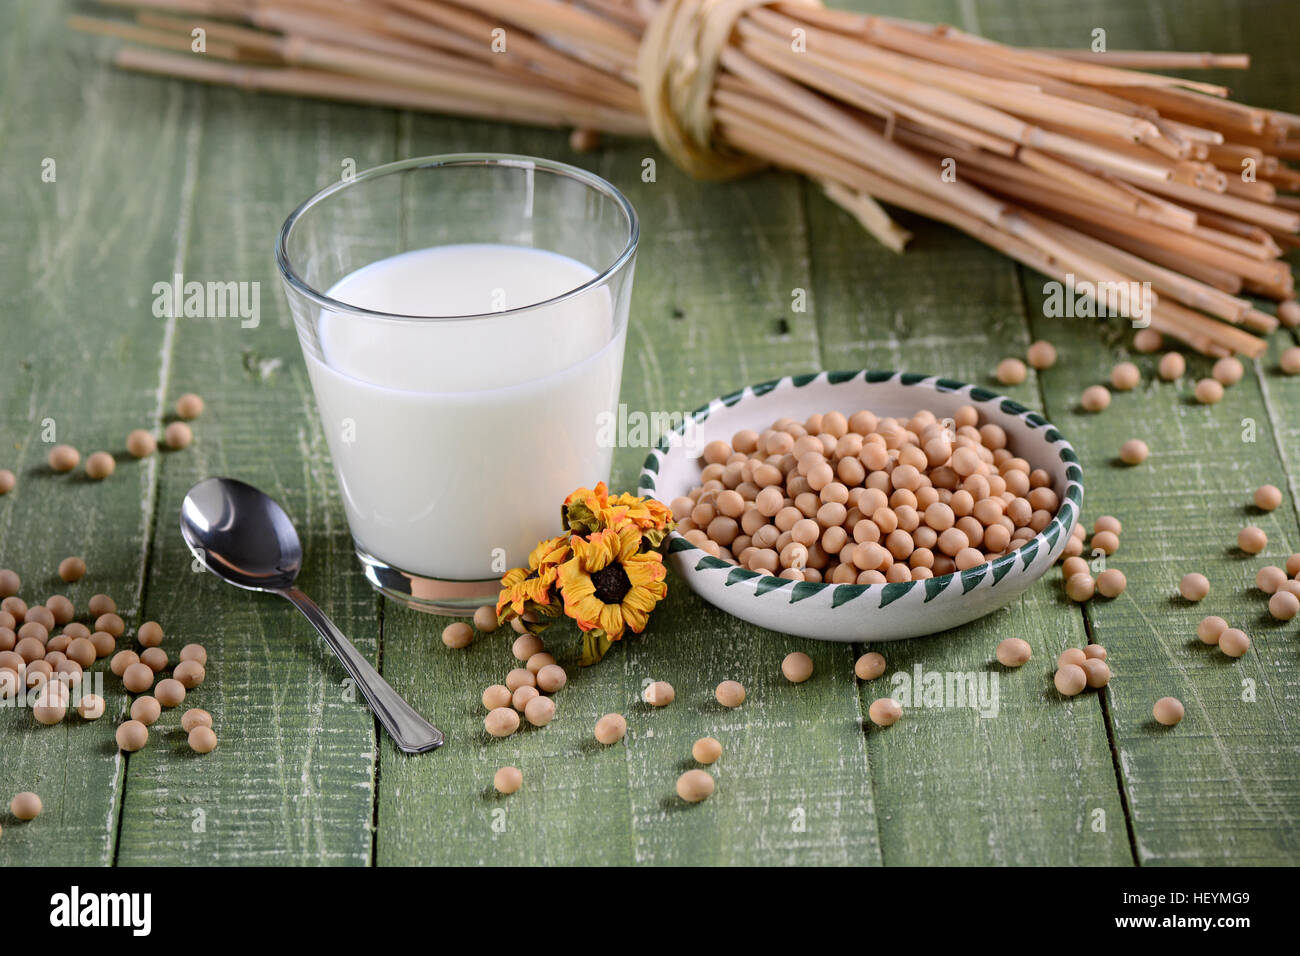 soy-milk-in-the-glass-with-the-seeds-in-the-bowl-HEYMG9.jpg